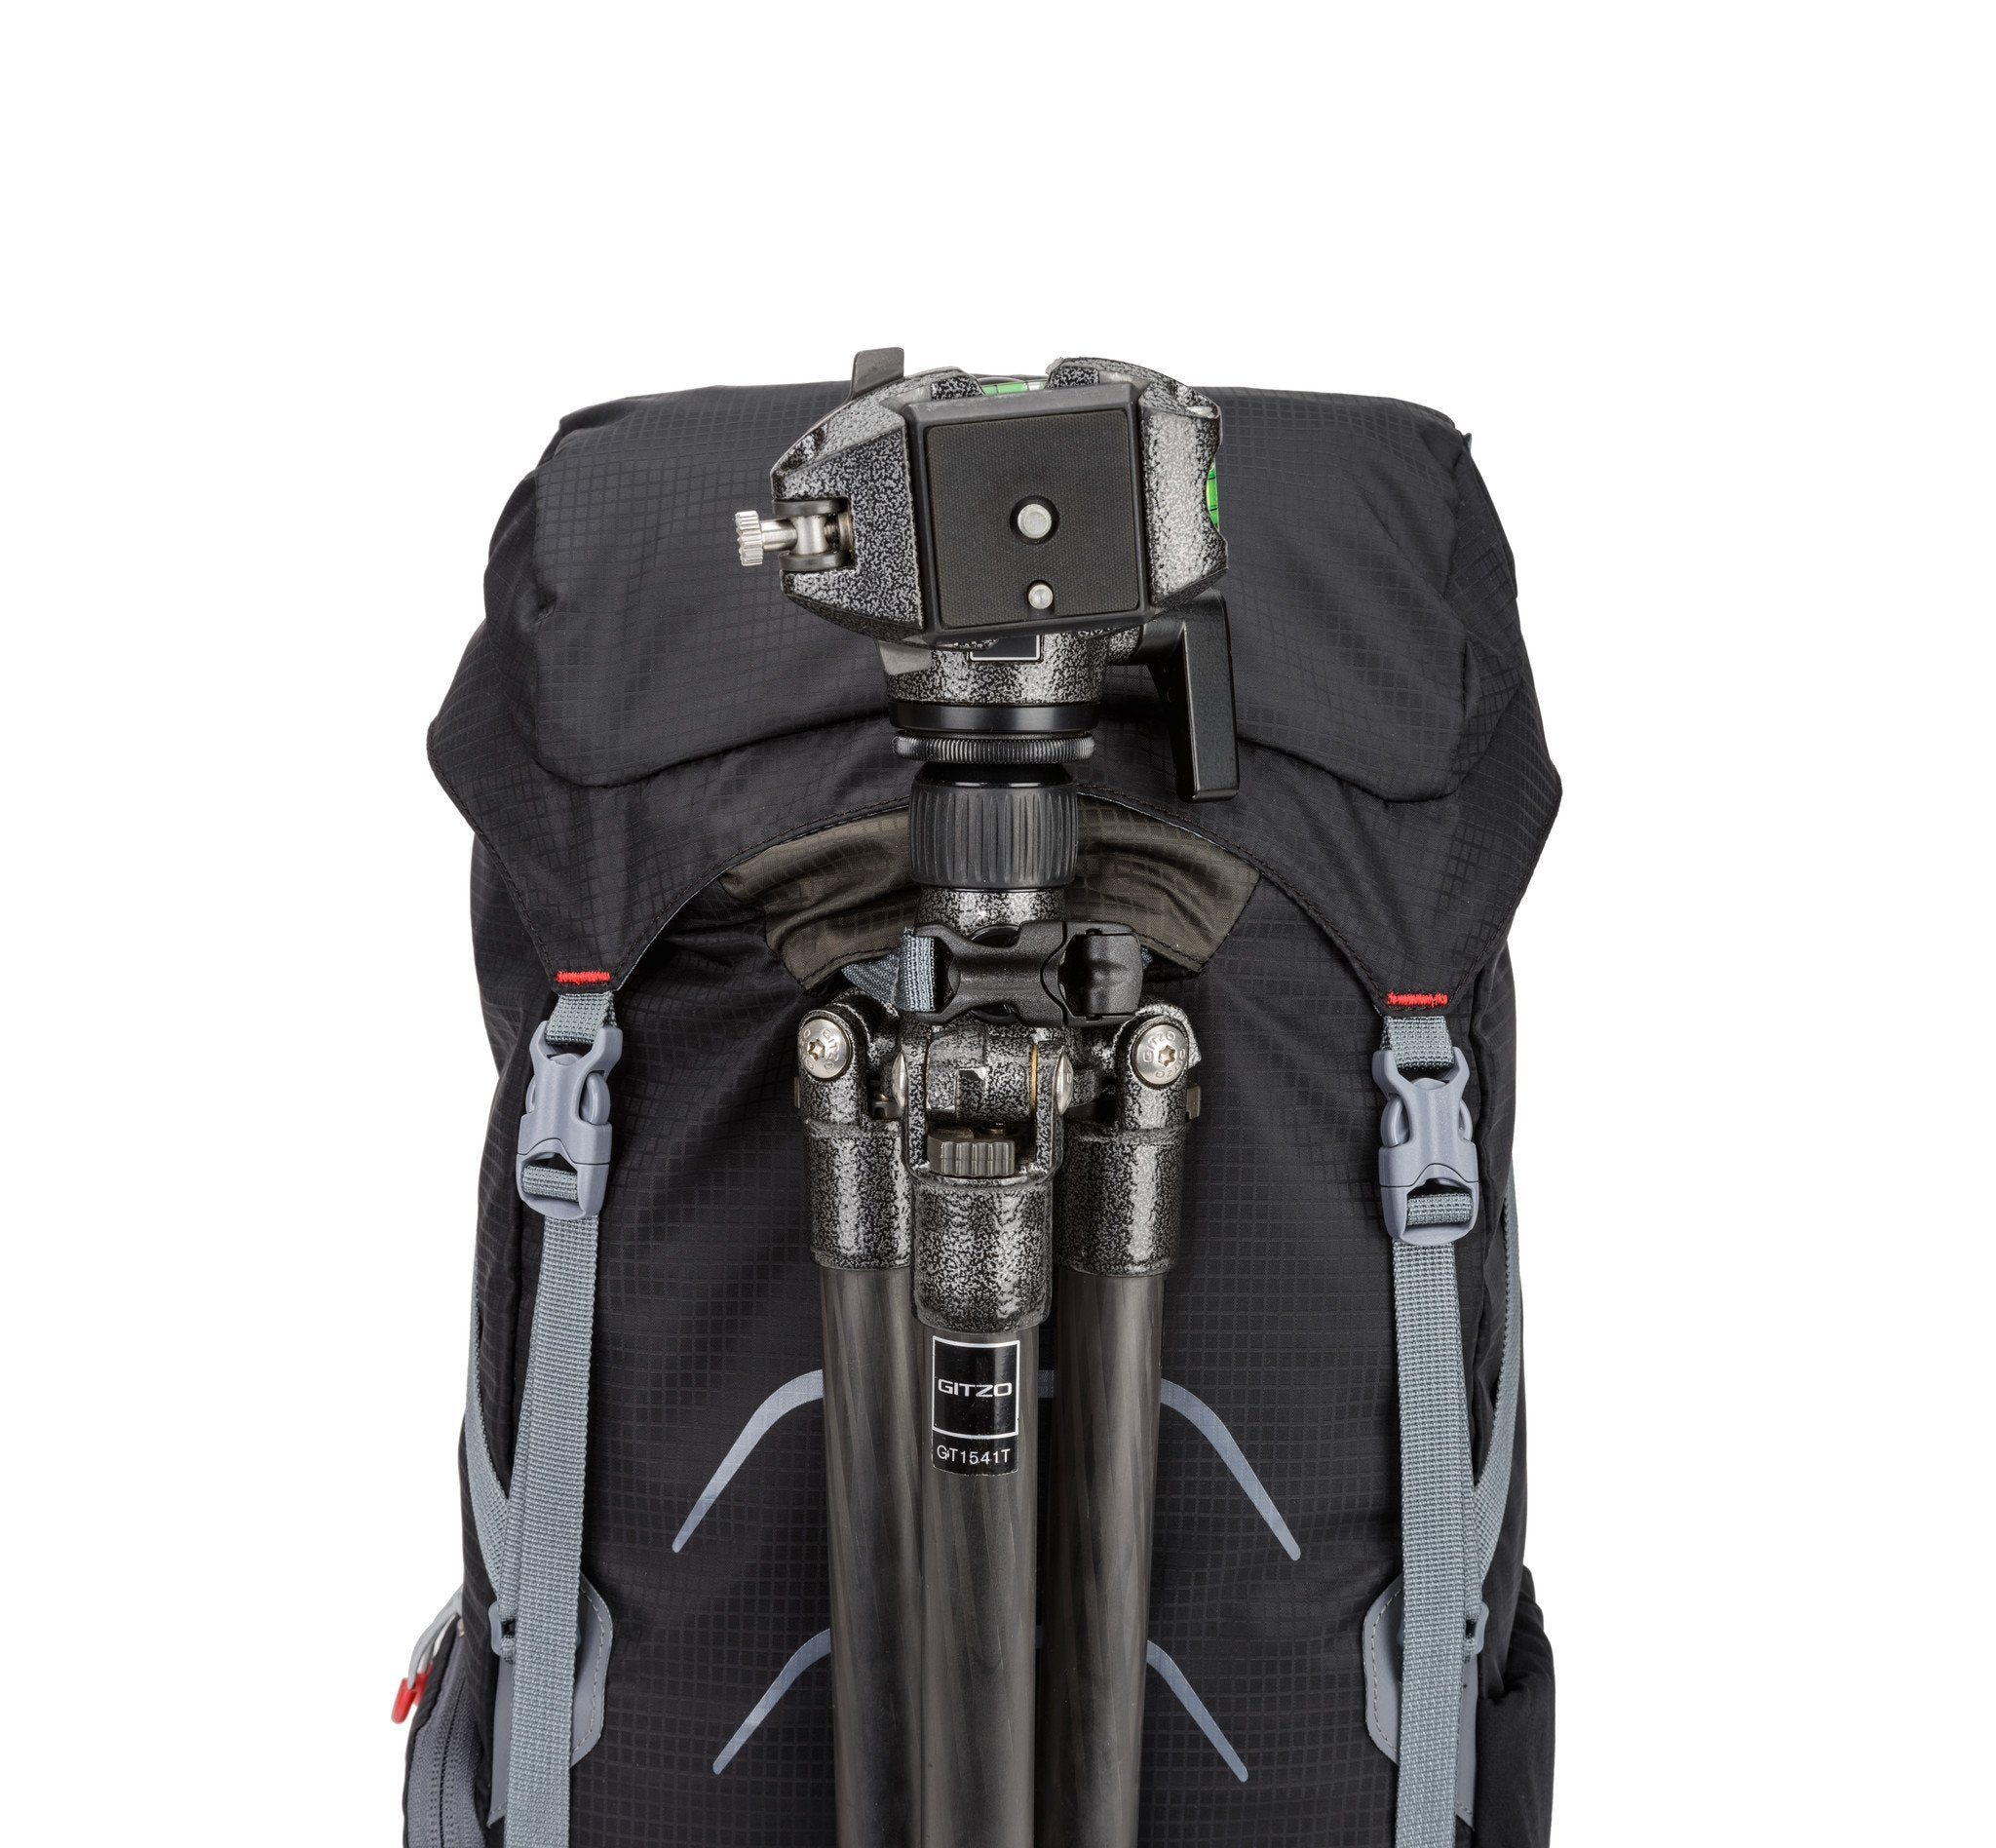 UltraLight™ Dual 25L - The Lightest Photo Backpack Ever